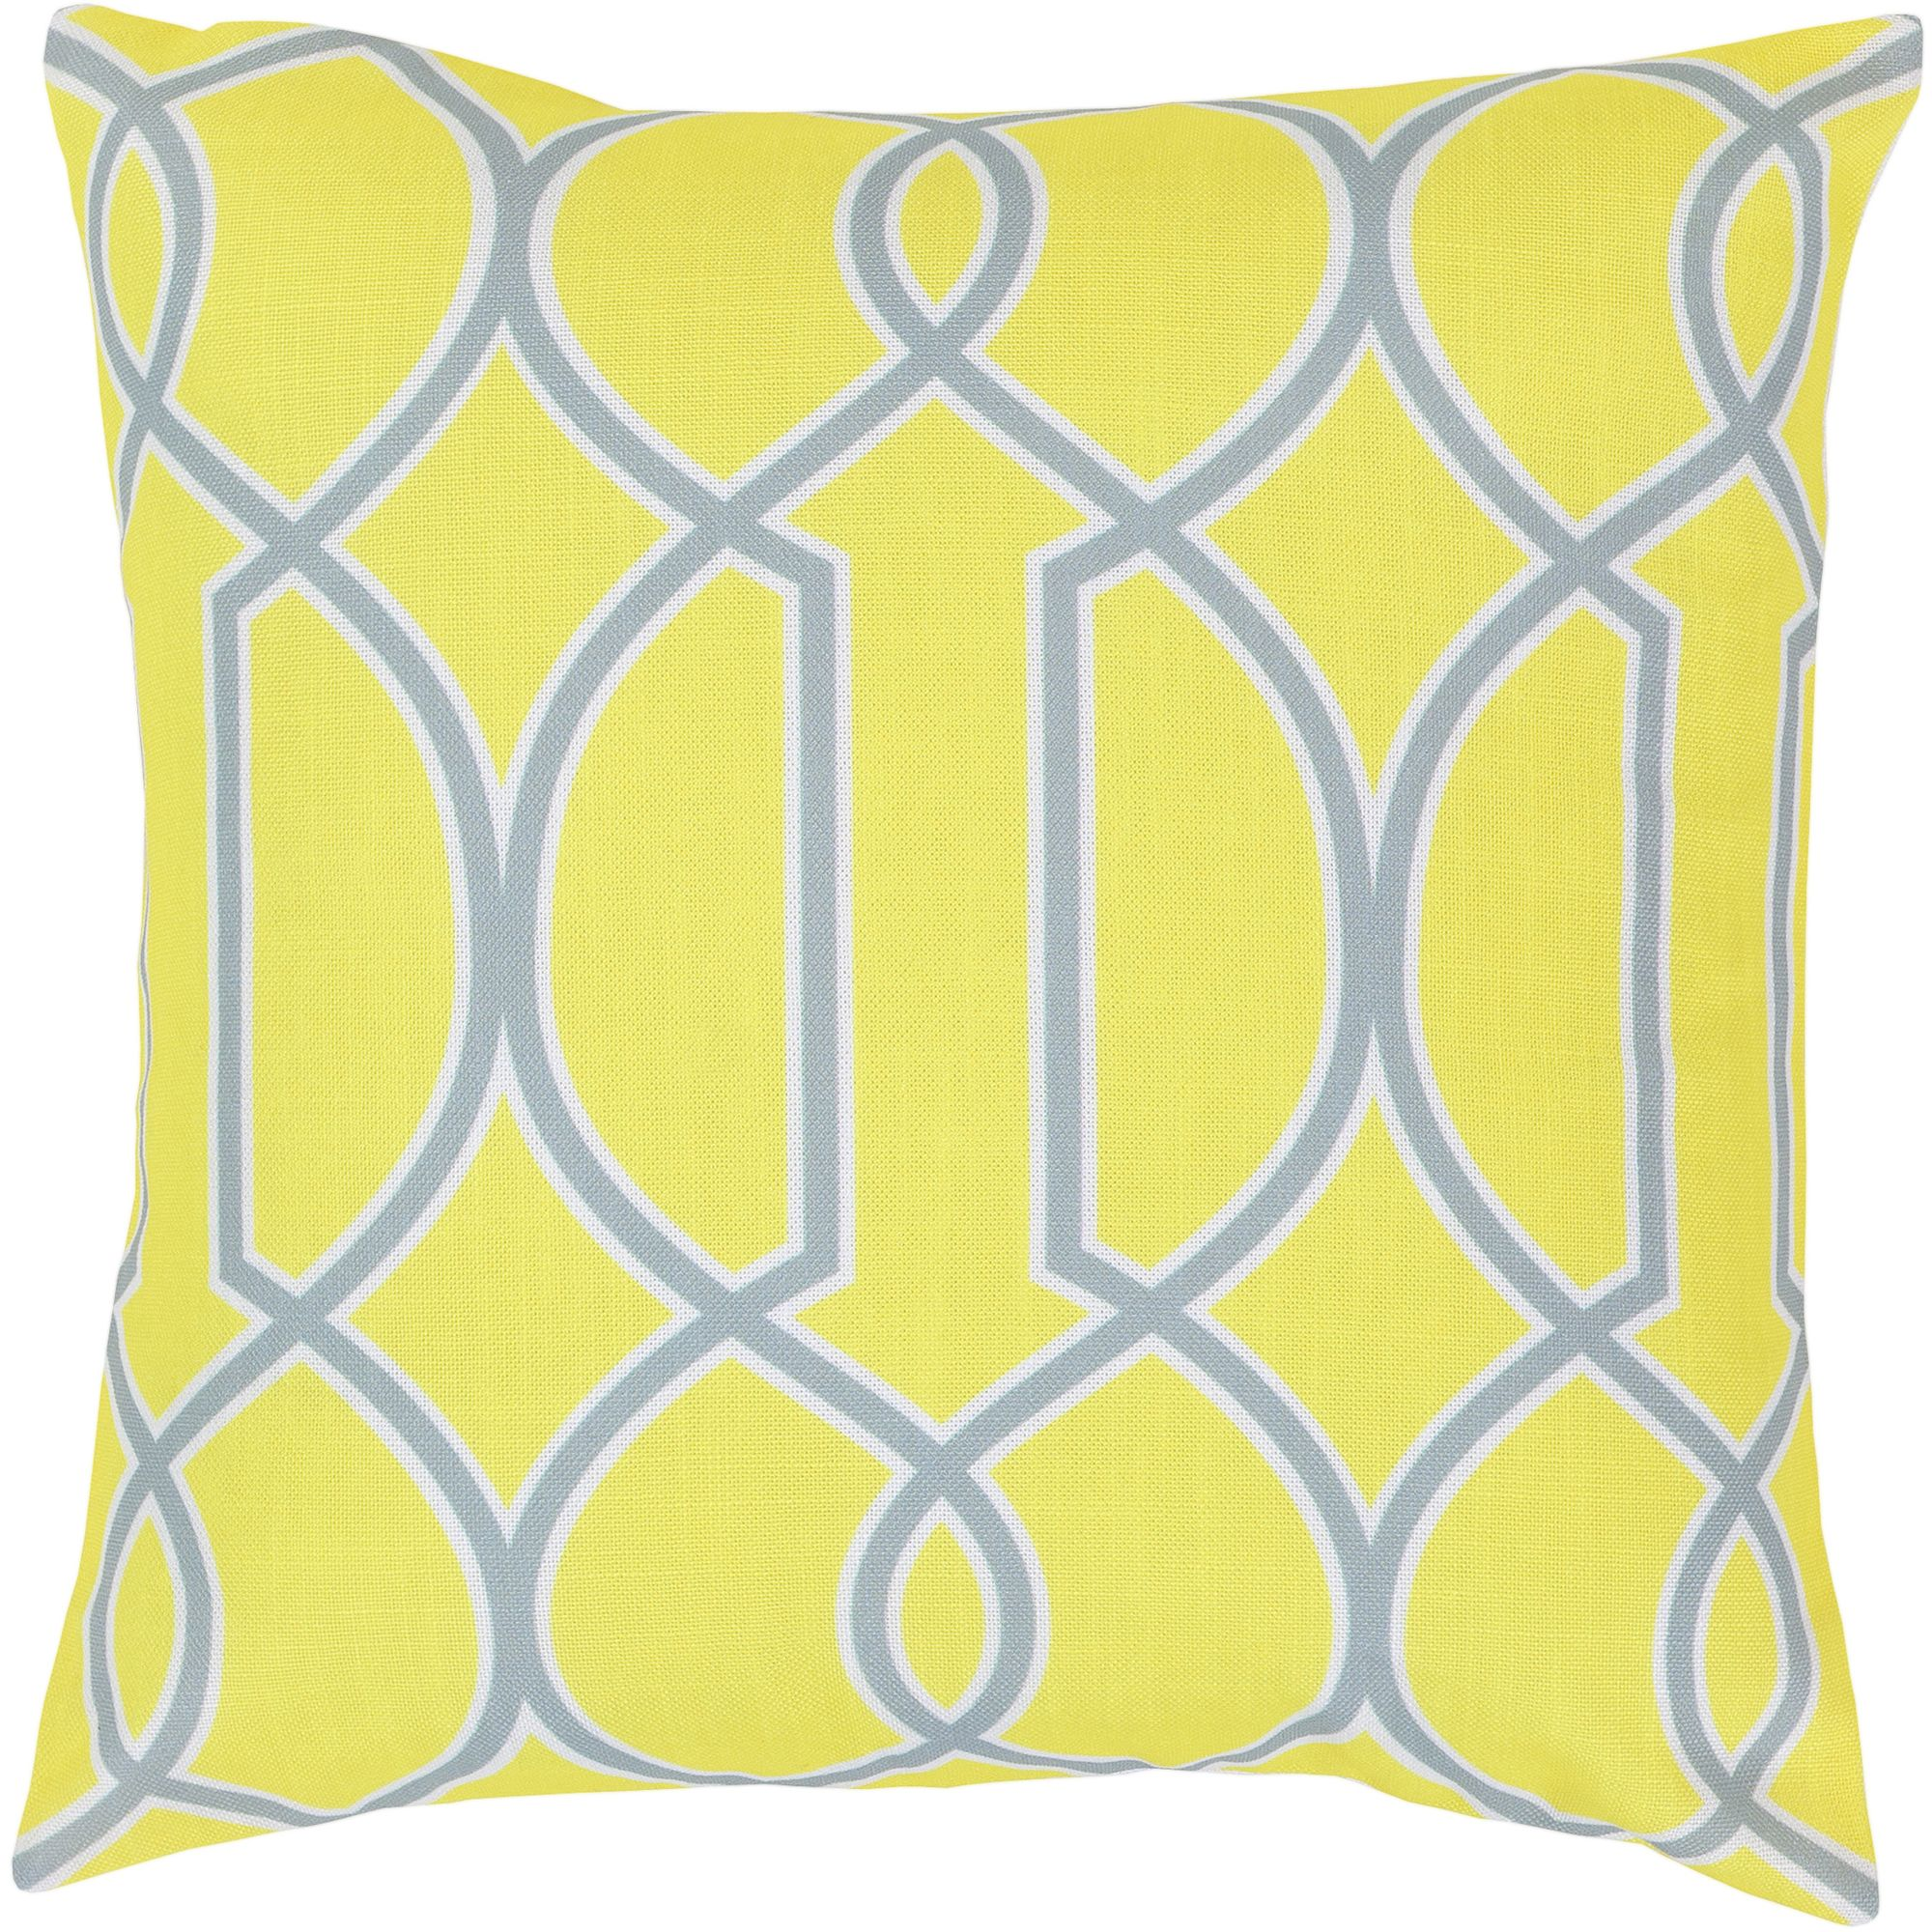 Art of Knot Bentley Hand Crafted Geometric Trellis Decorative Pillow with Poly Filler, Lemon